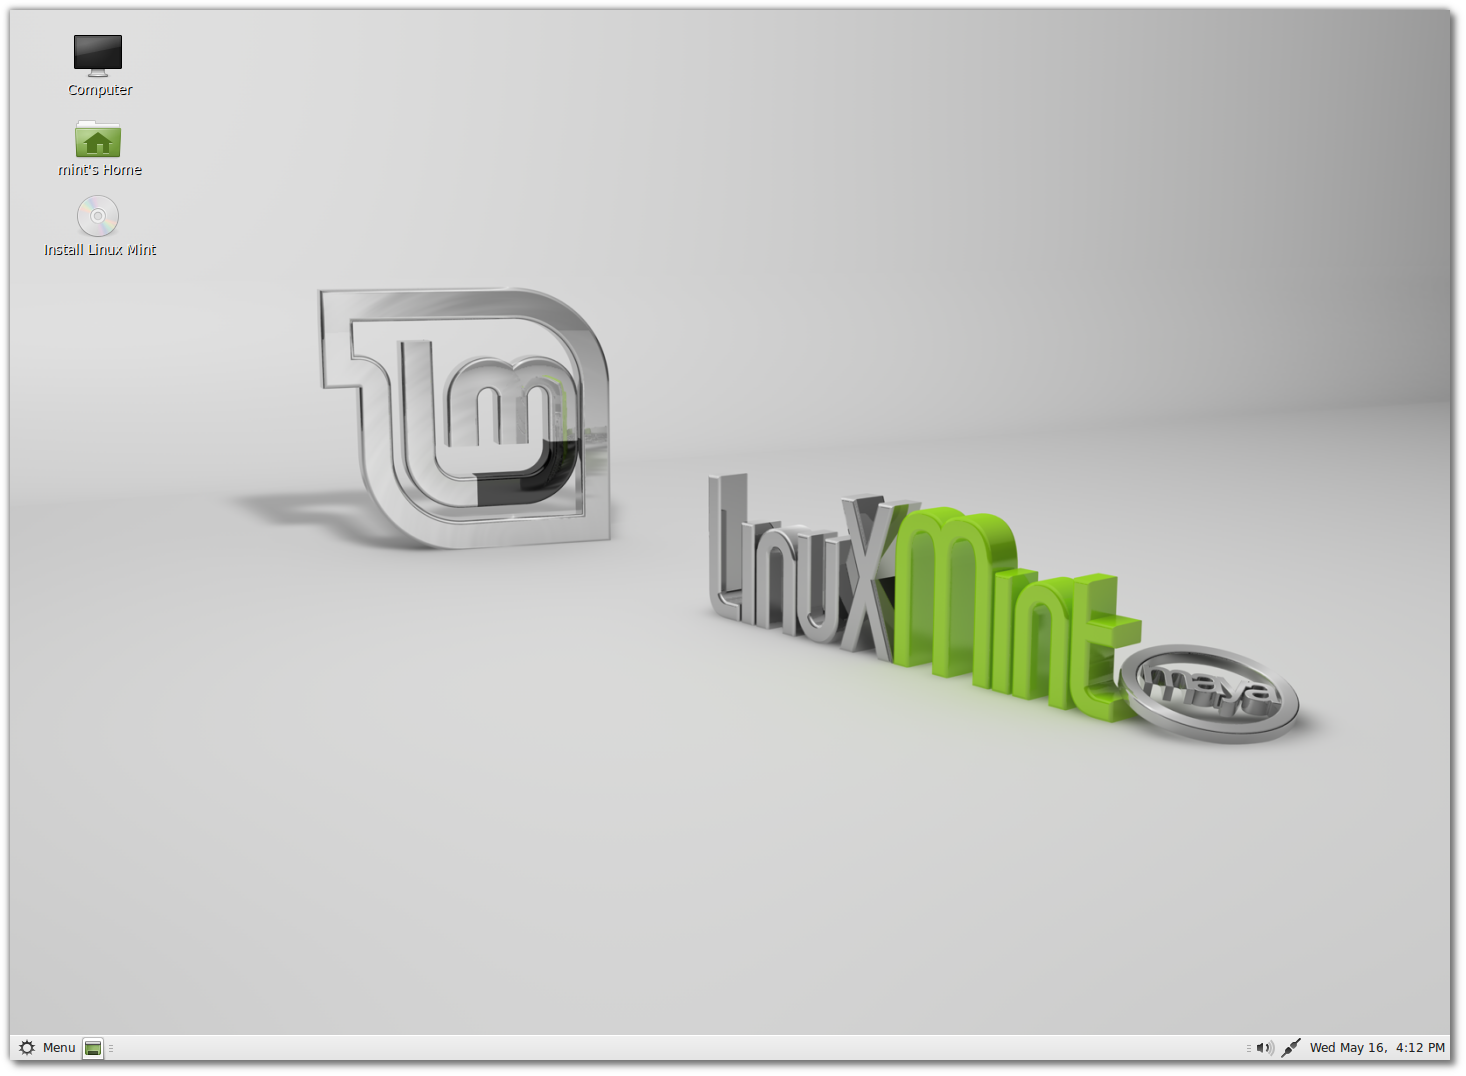 How To Add The Backports Repository To Linux Mint 13 Maya, In Order To Get Cinnamon 2.0, Mate 1.6 Or MDM 1.4